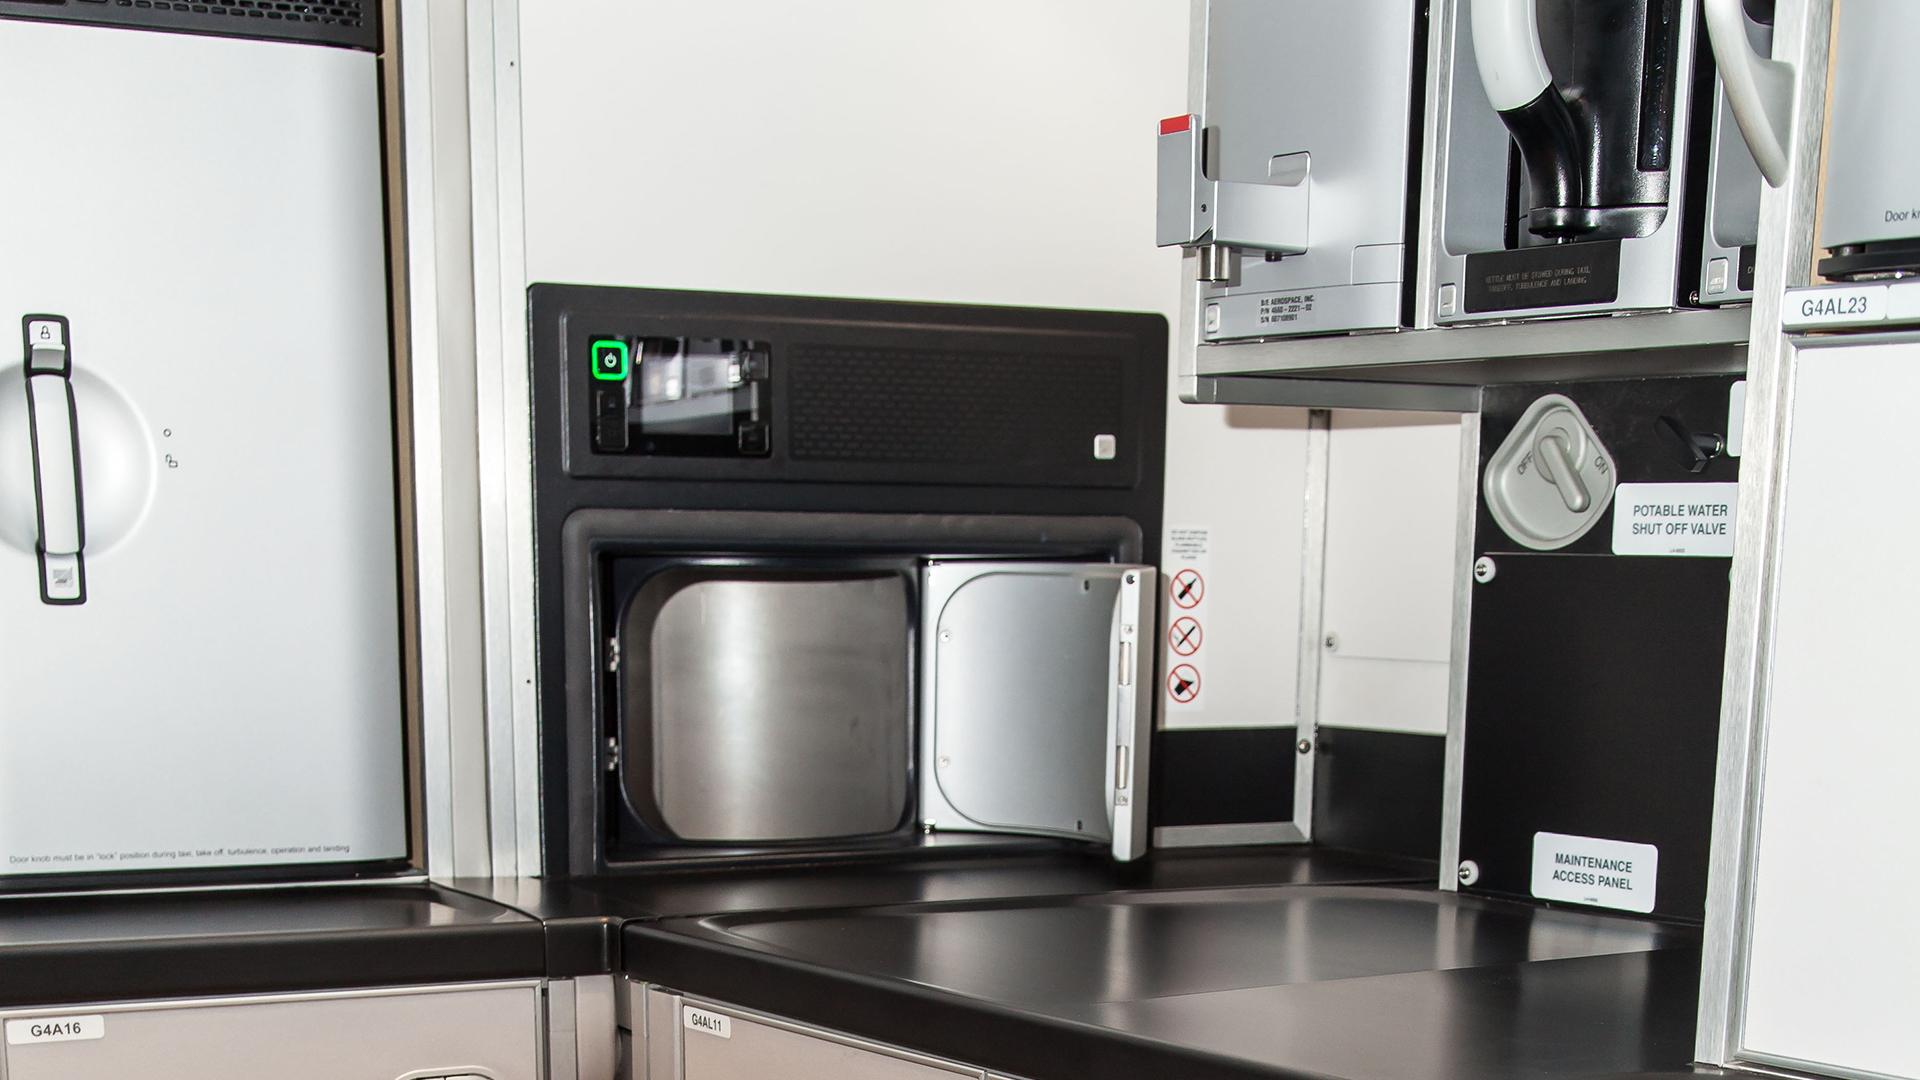 Galley Systems For A350 Aircraft